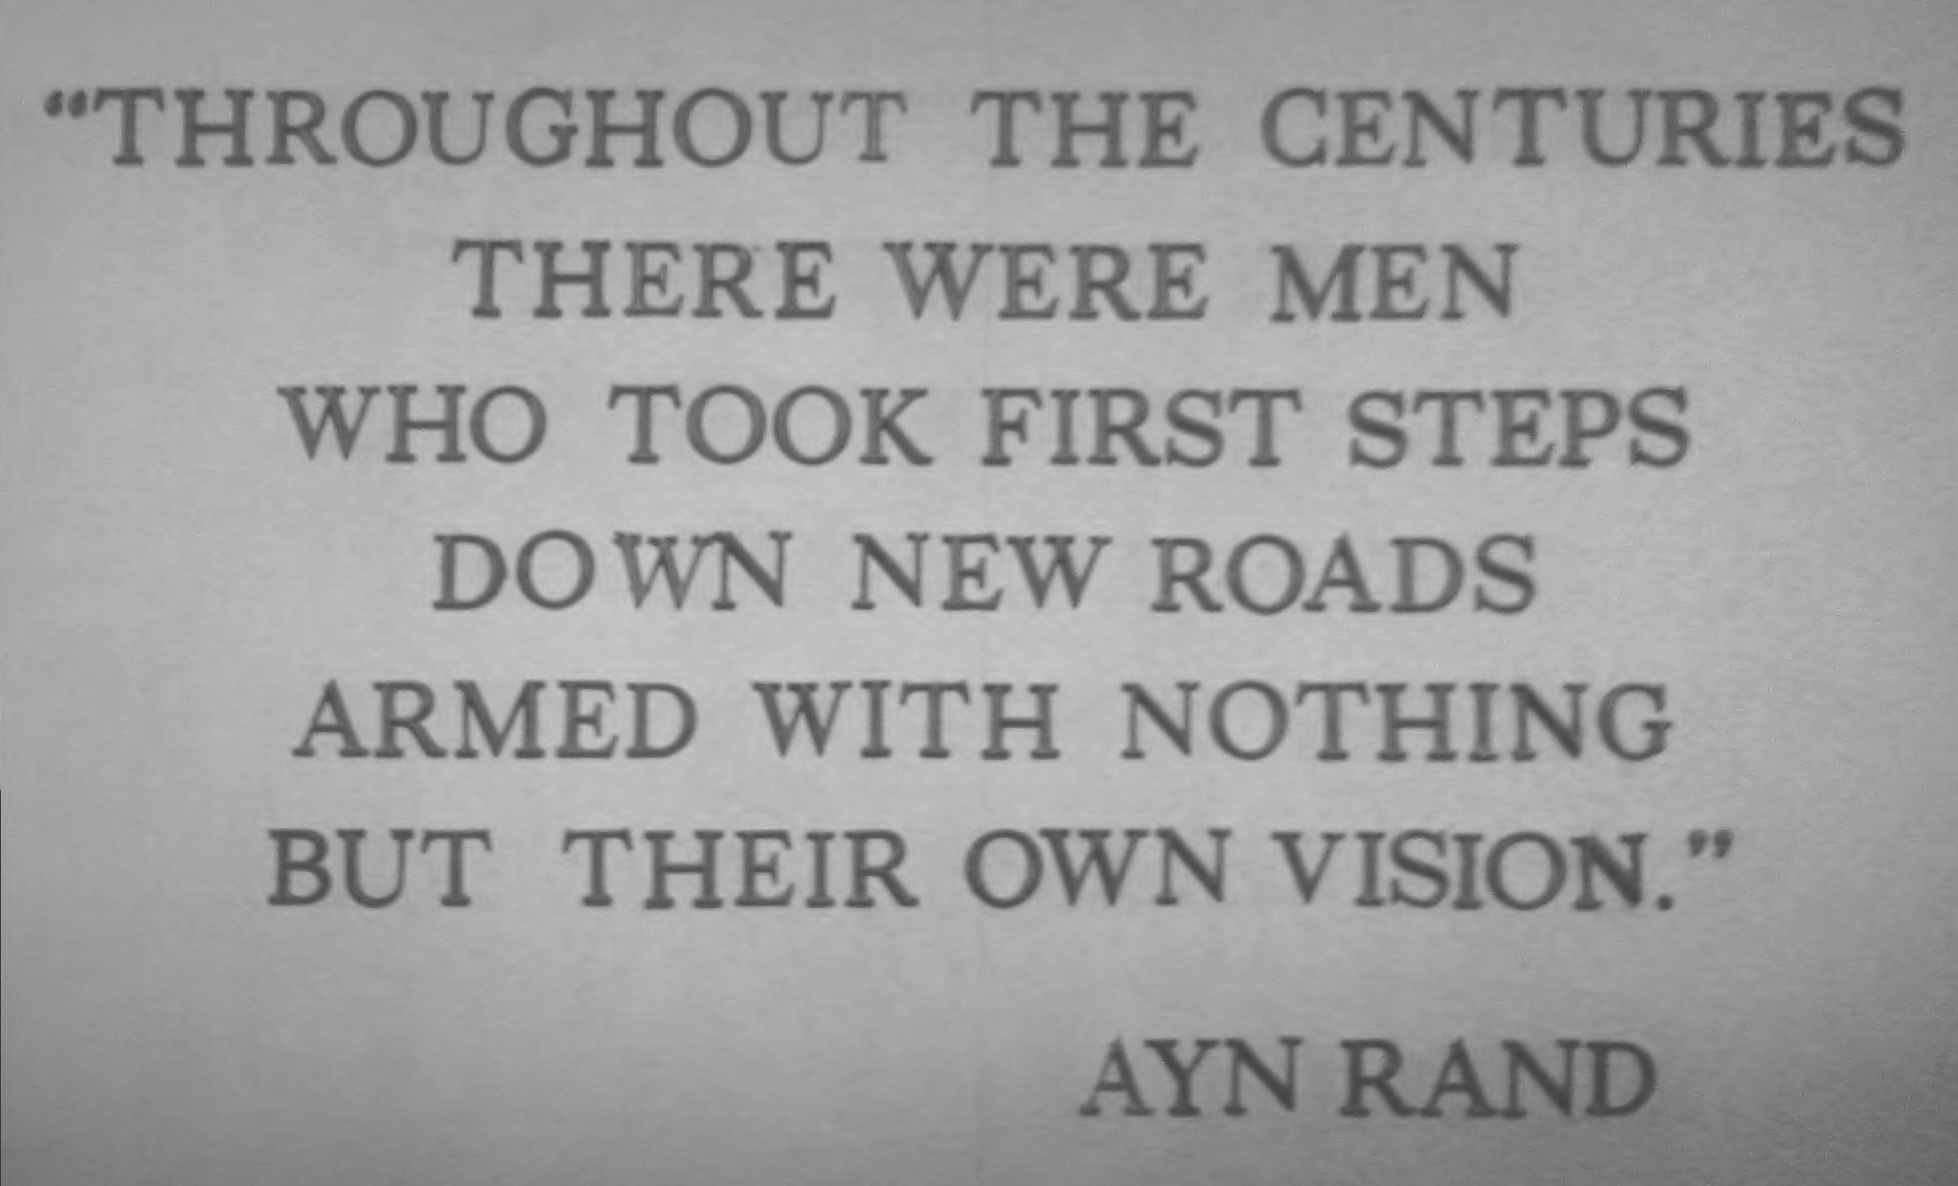 Ayn Rand quote #1